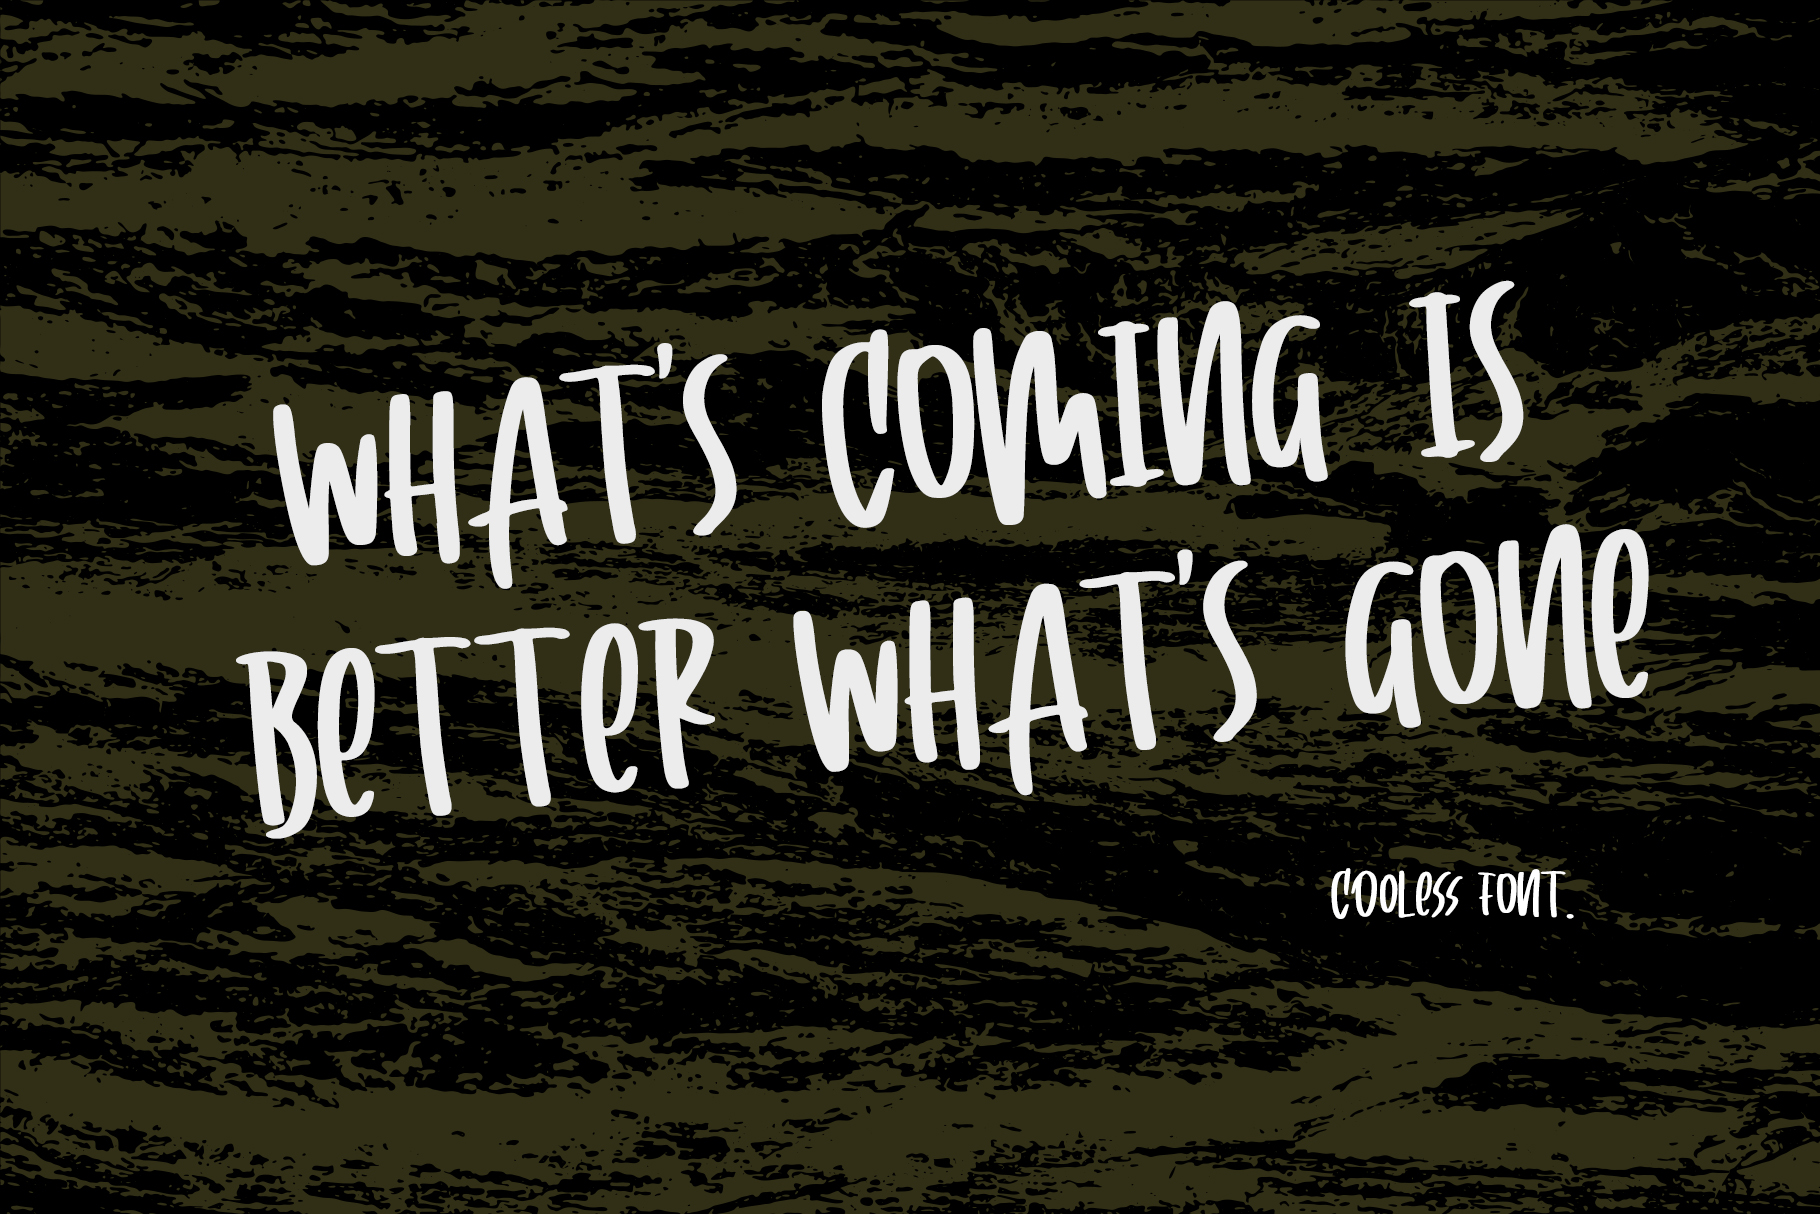 Cooless - Brush Font example image 4